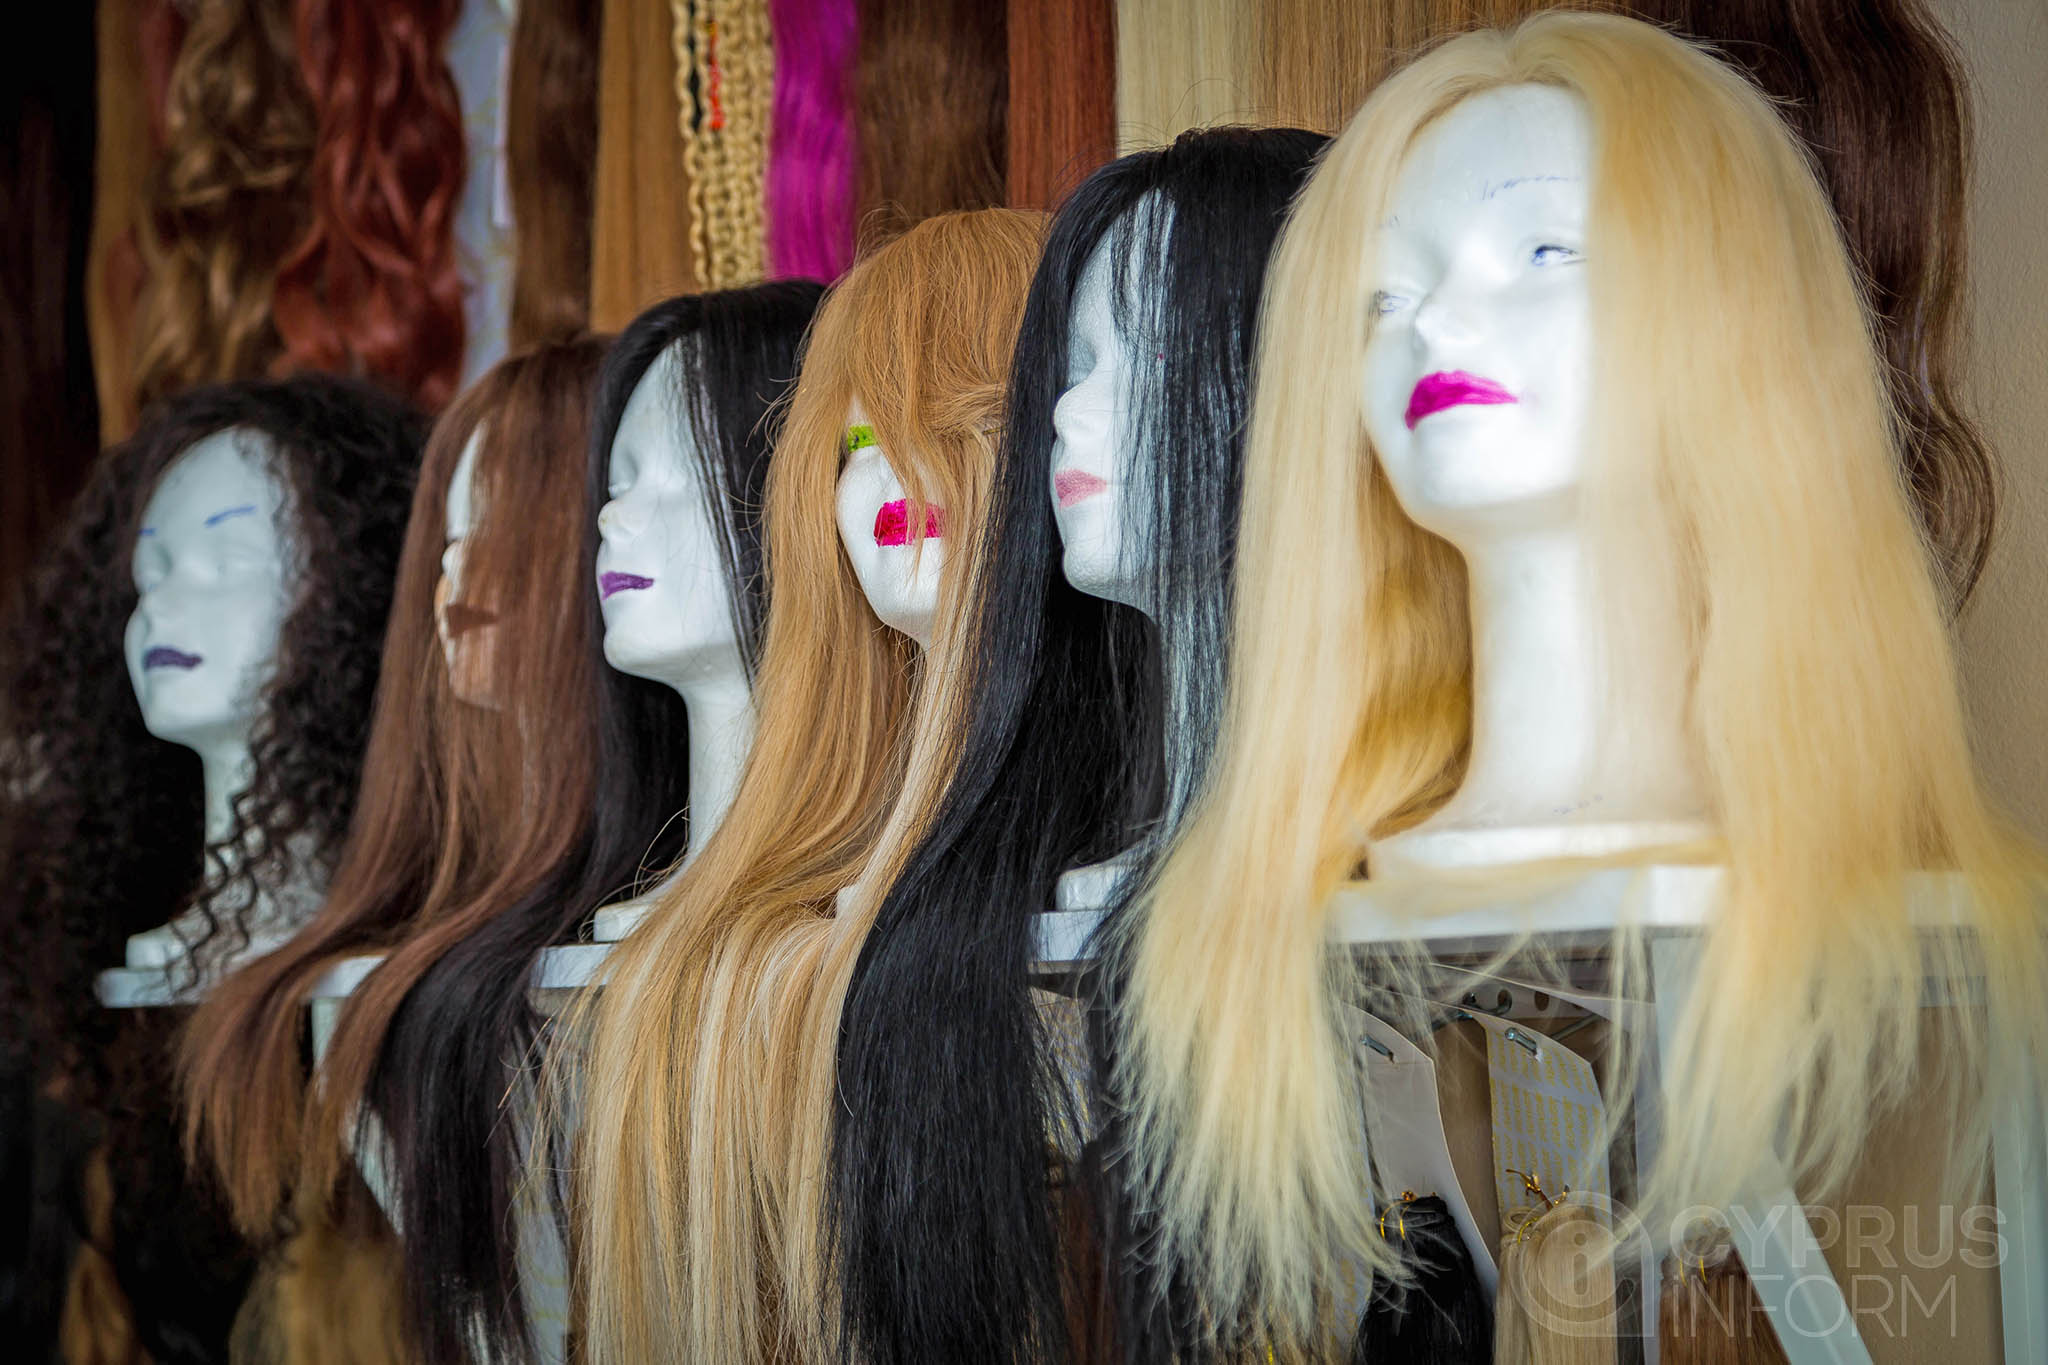 Jenny s salons beauty and hair extensions in cyprus - Beauty salon hair extensions ...